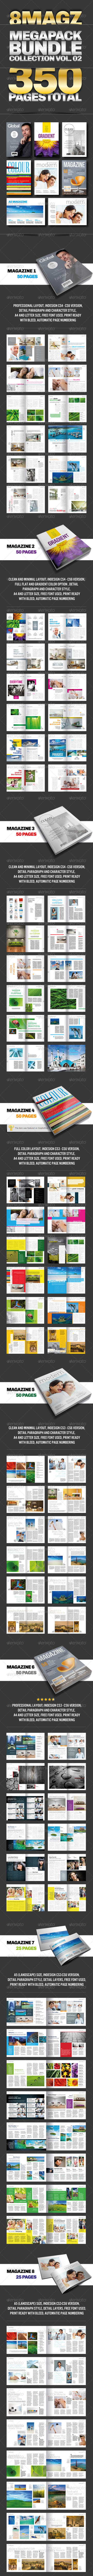 GraphicRiver Megapack Magazine Bundle 02 5162895